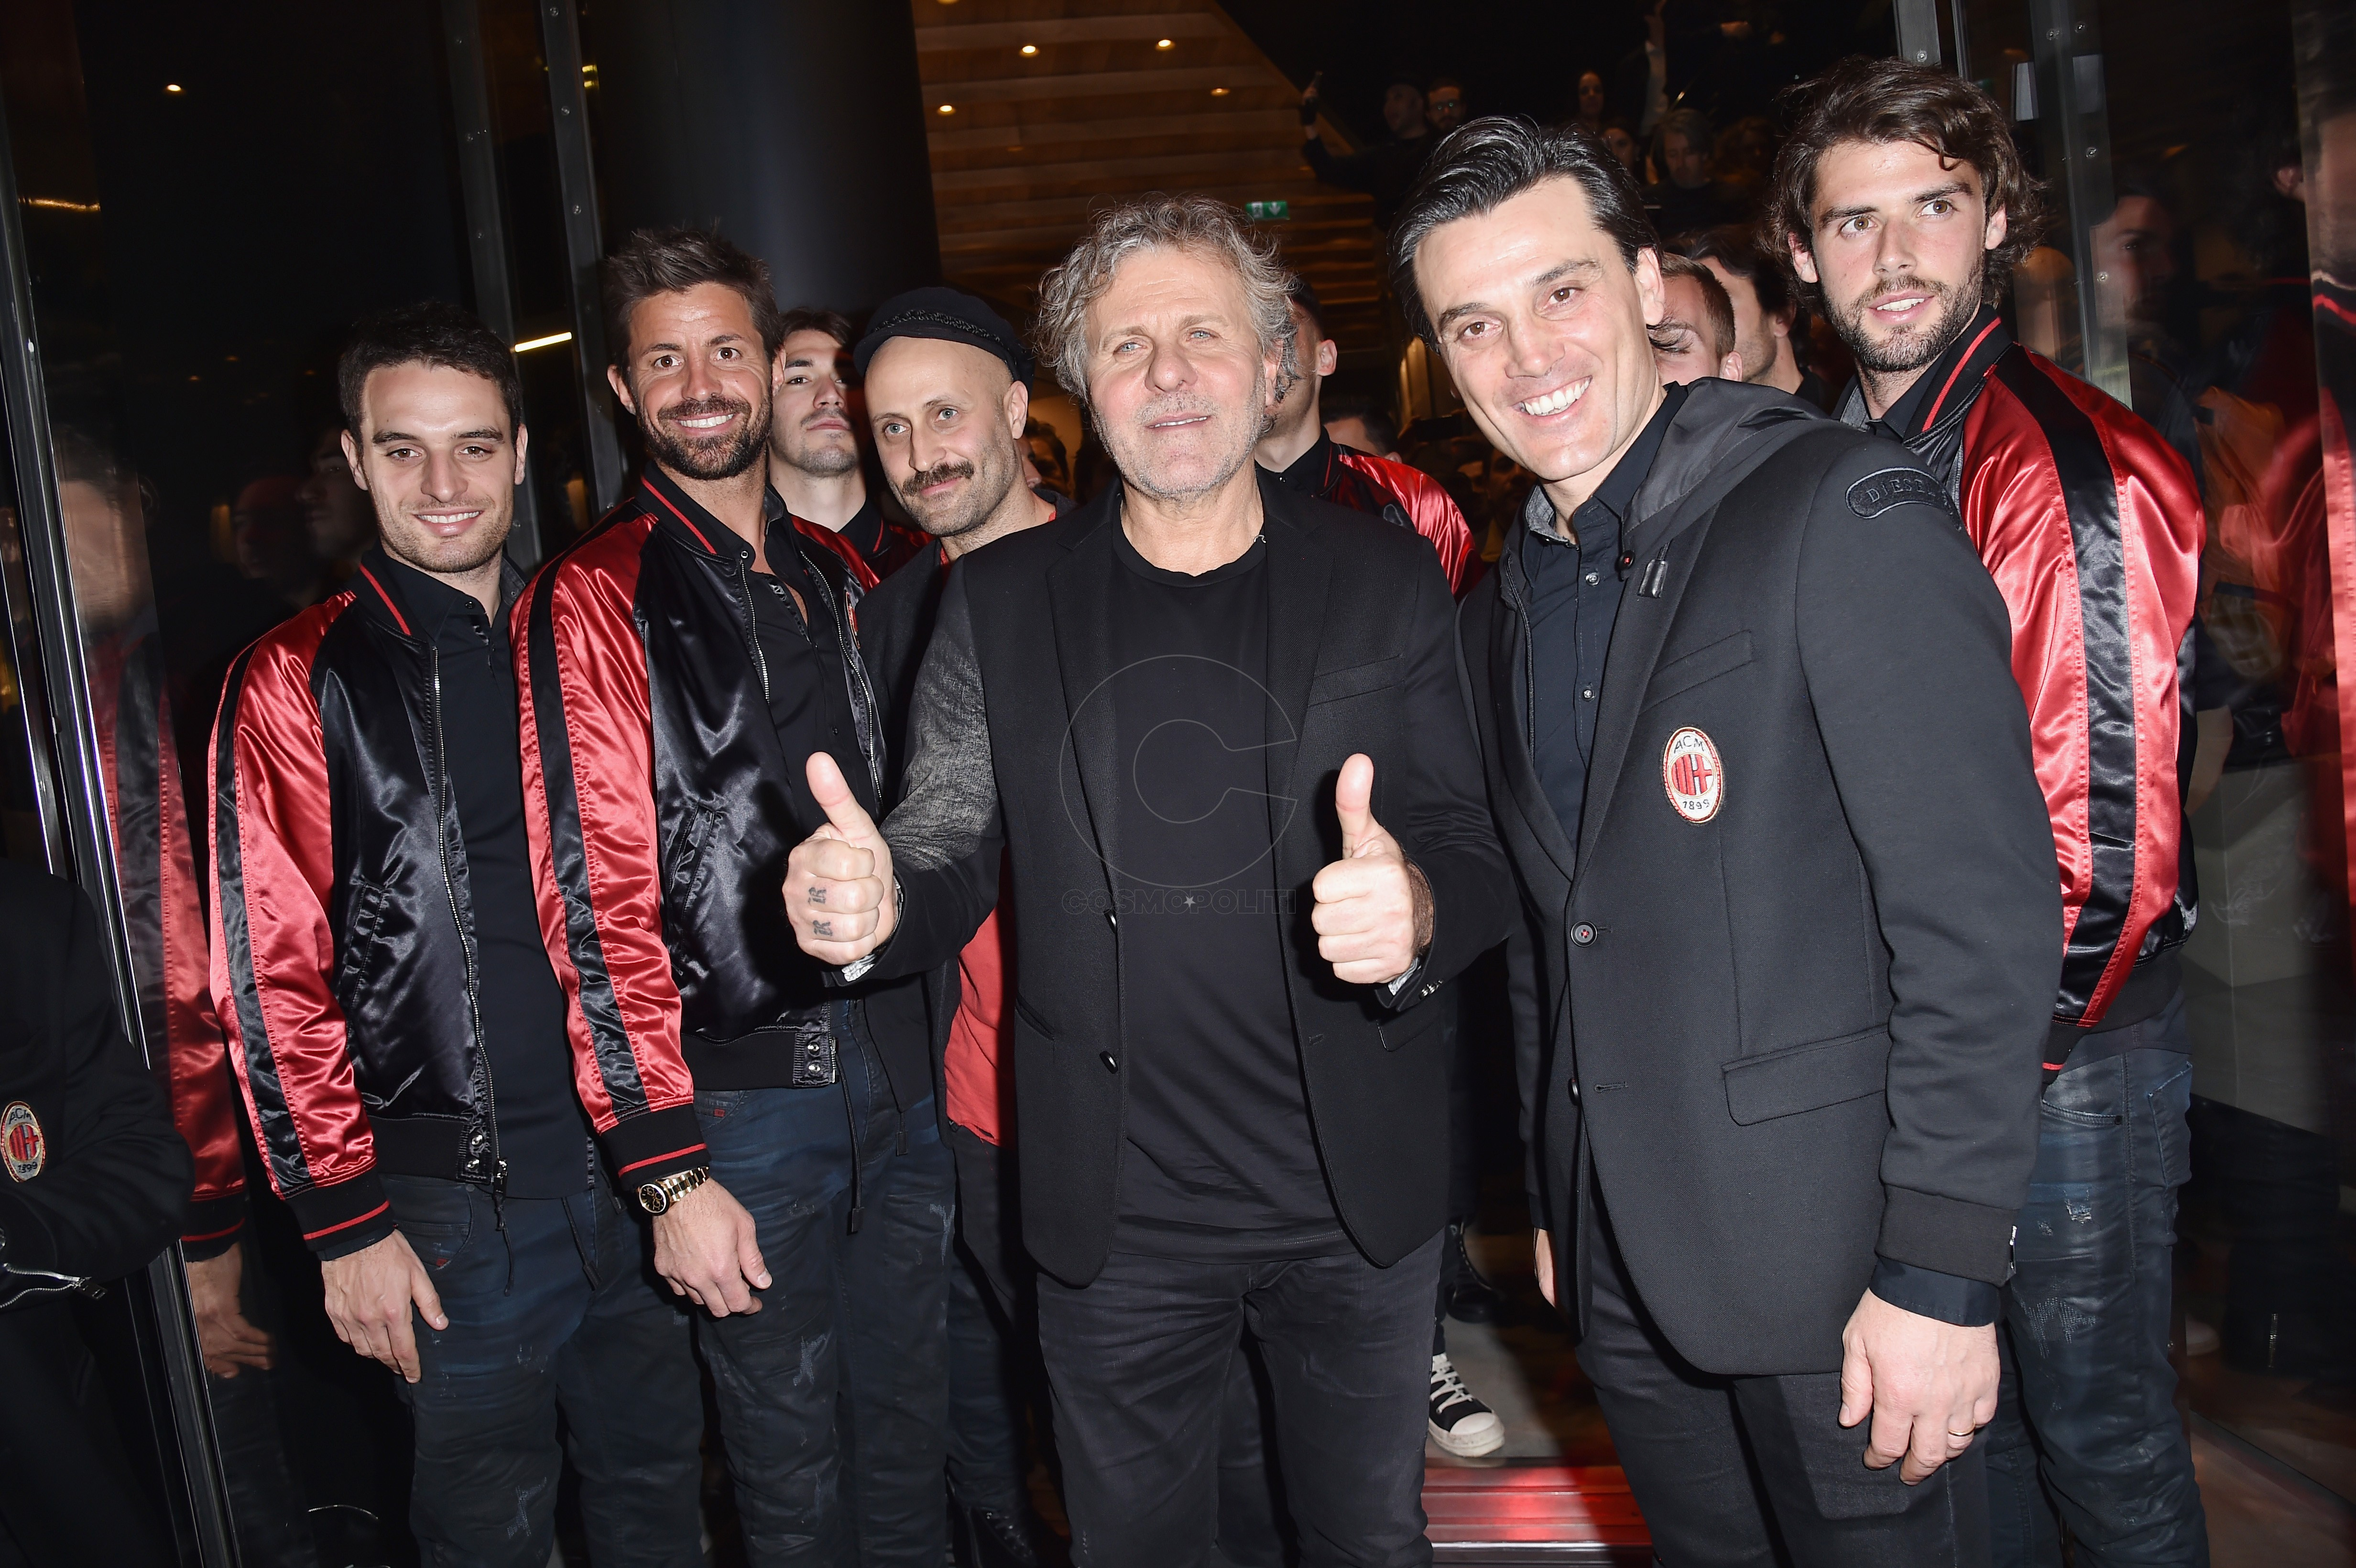 MILAN, ITALY - MARCH 14: (L-R) Marco Storari, Andrea Rosso, Renzo Rosso, Vincenzo Montella and Andrea Poli attend The New Bomber Presentation at the Diesel Store on March 14, 2017 in Milan, Italy. (Photo by Jacopo Raule/Getty Images for Diesel)